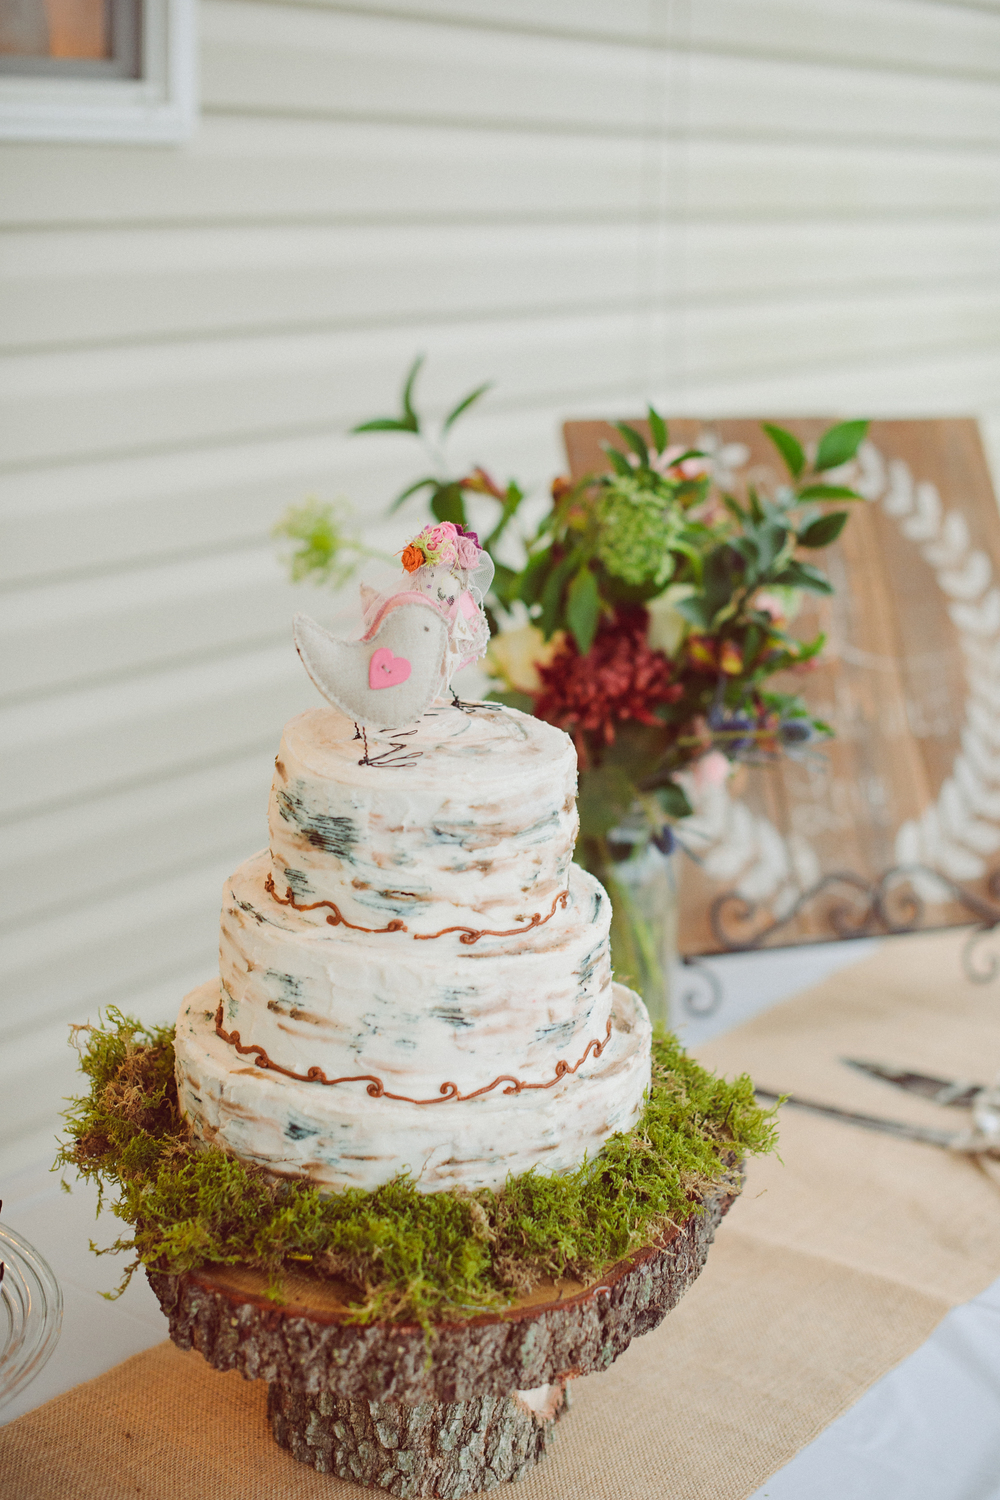 Ng-Photography-backyard-wedding-royal-hair-and-makeup-ivory-and-beau-wedding-planning-wedding-flowers-savannah-florist-savannah-flowers-savannah-weddings-savannah-wedding-savannah-event-planner-savannah-wedding-planner-savannah-rustic-wedding-28.jpg